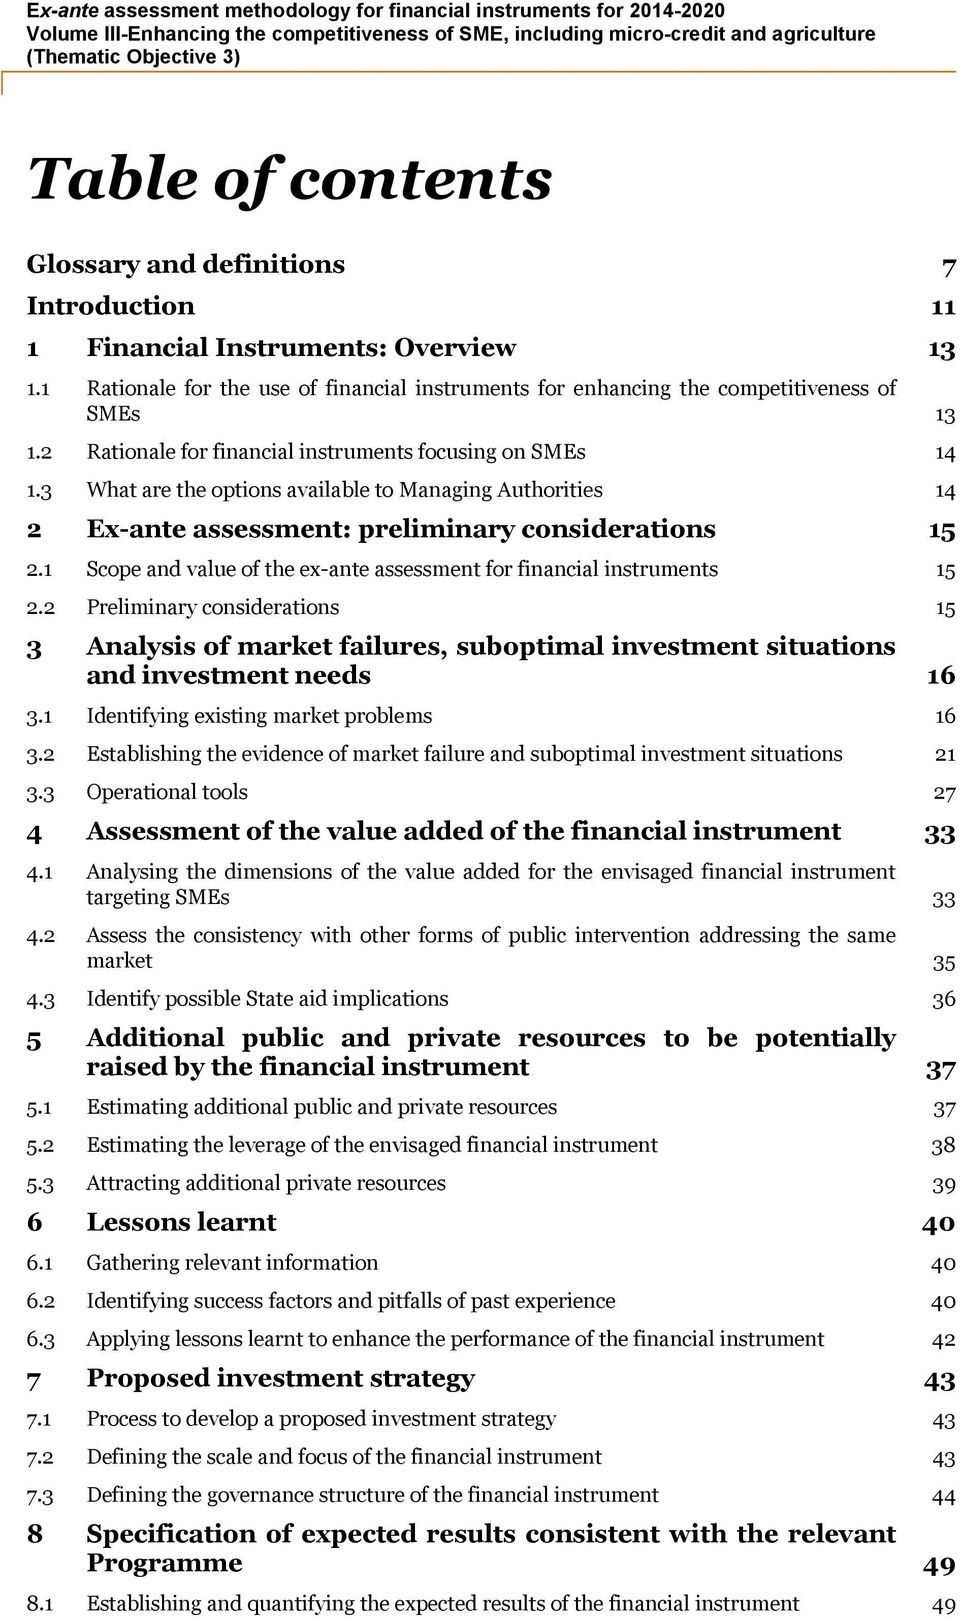 1 Scope and value of the ex-ante assessment for financial instruments 15 2.2 Preliminary considerations 15 3 Analysis of market failures, suboptimal investment situations and investment needs 16 3.